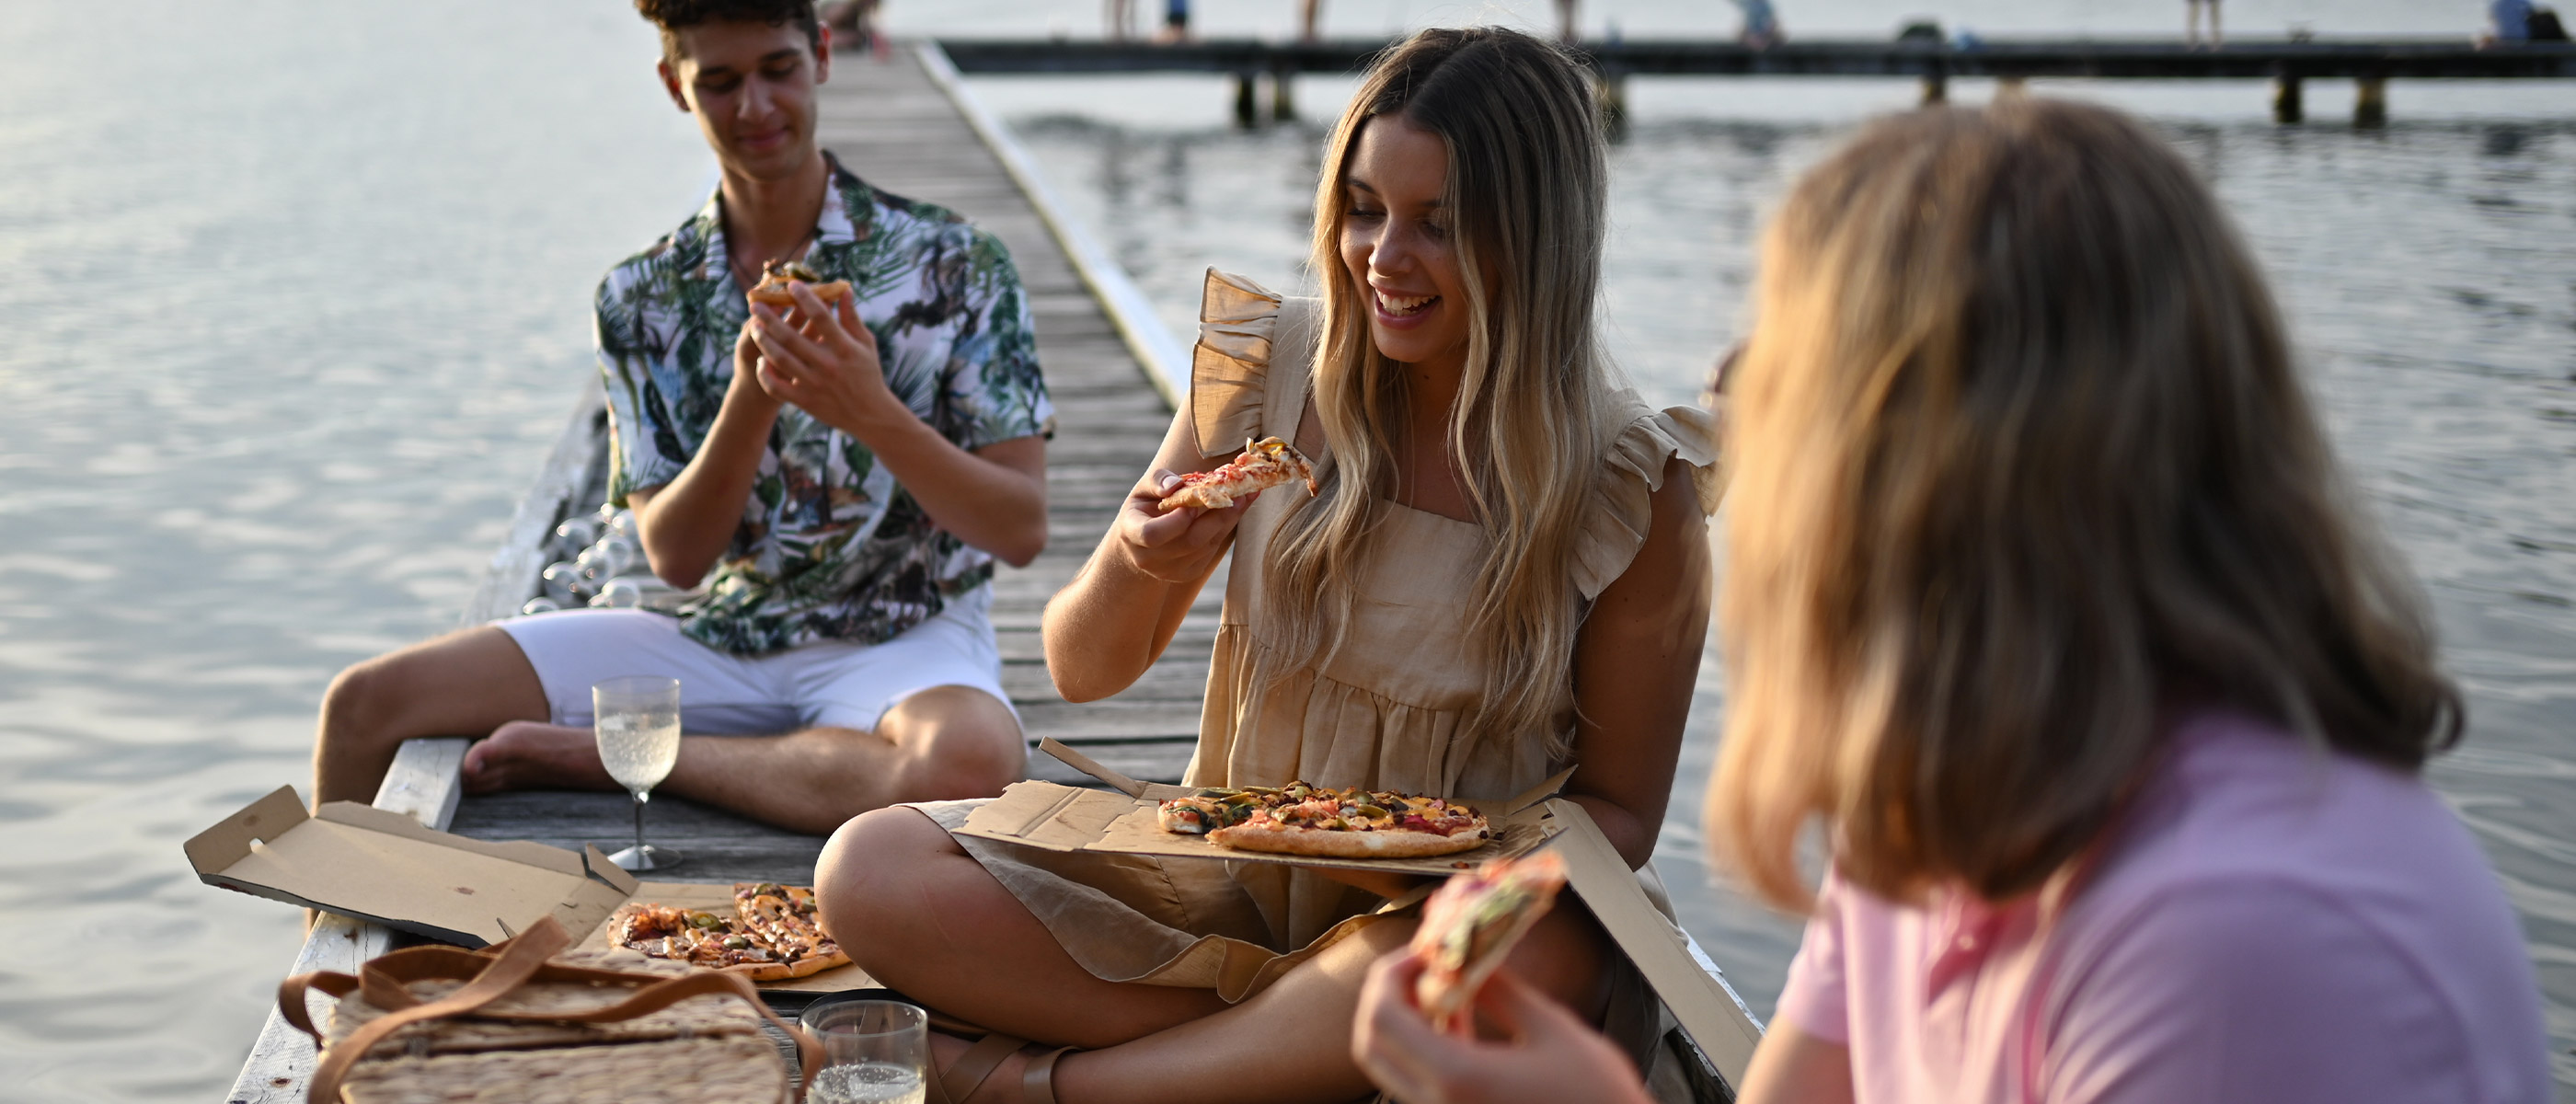 photo of people eating pizza on a dock, over water, taken with the NIKKOR Z 40mm f/2